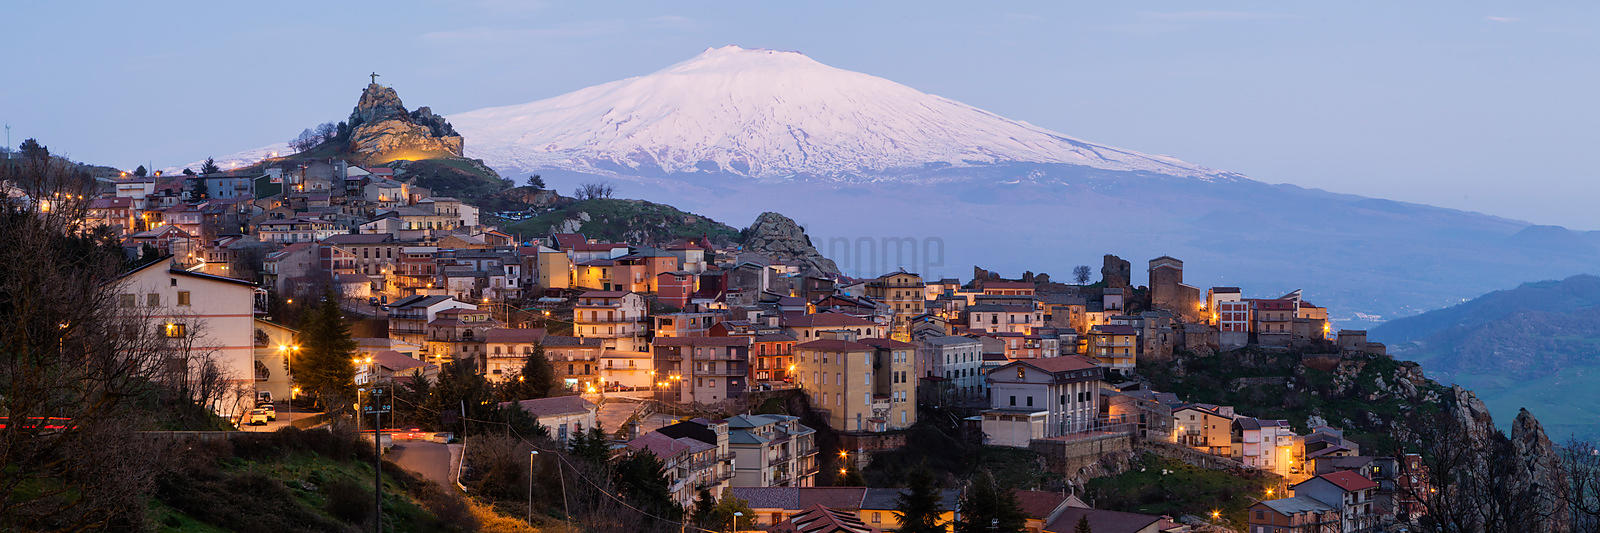 Dusk View of Mt Etna with the Town of Cesarò in the Foreground